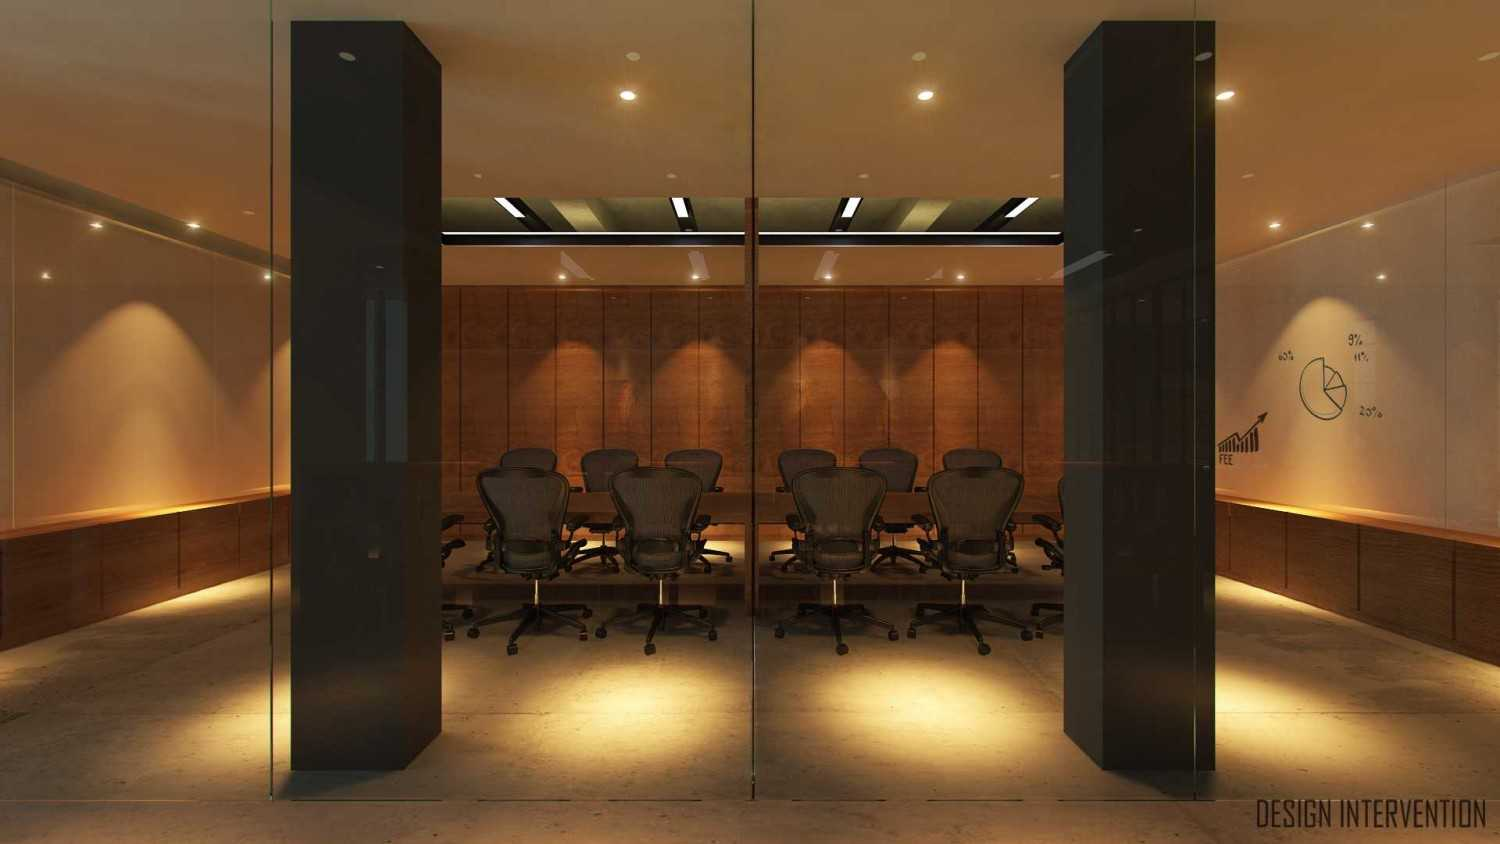 Foto inspirasi ide desain ruang meeting Meeting-room-view oleh DESIGN INTERVENTION di Arsitag